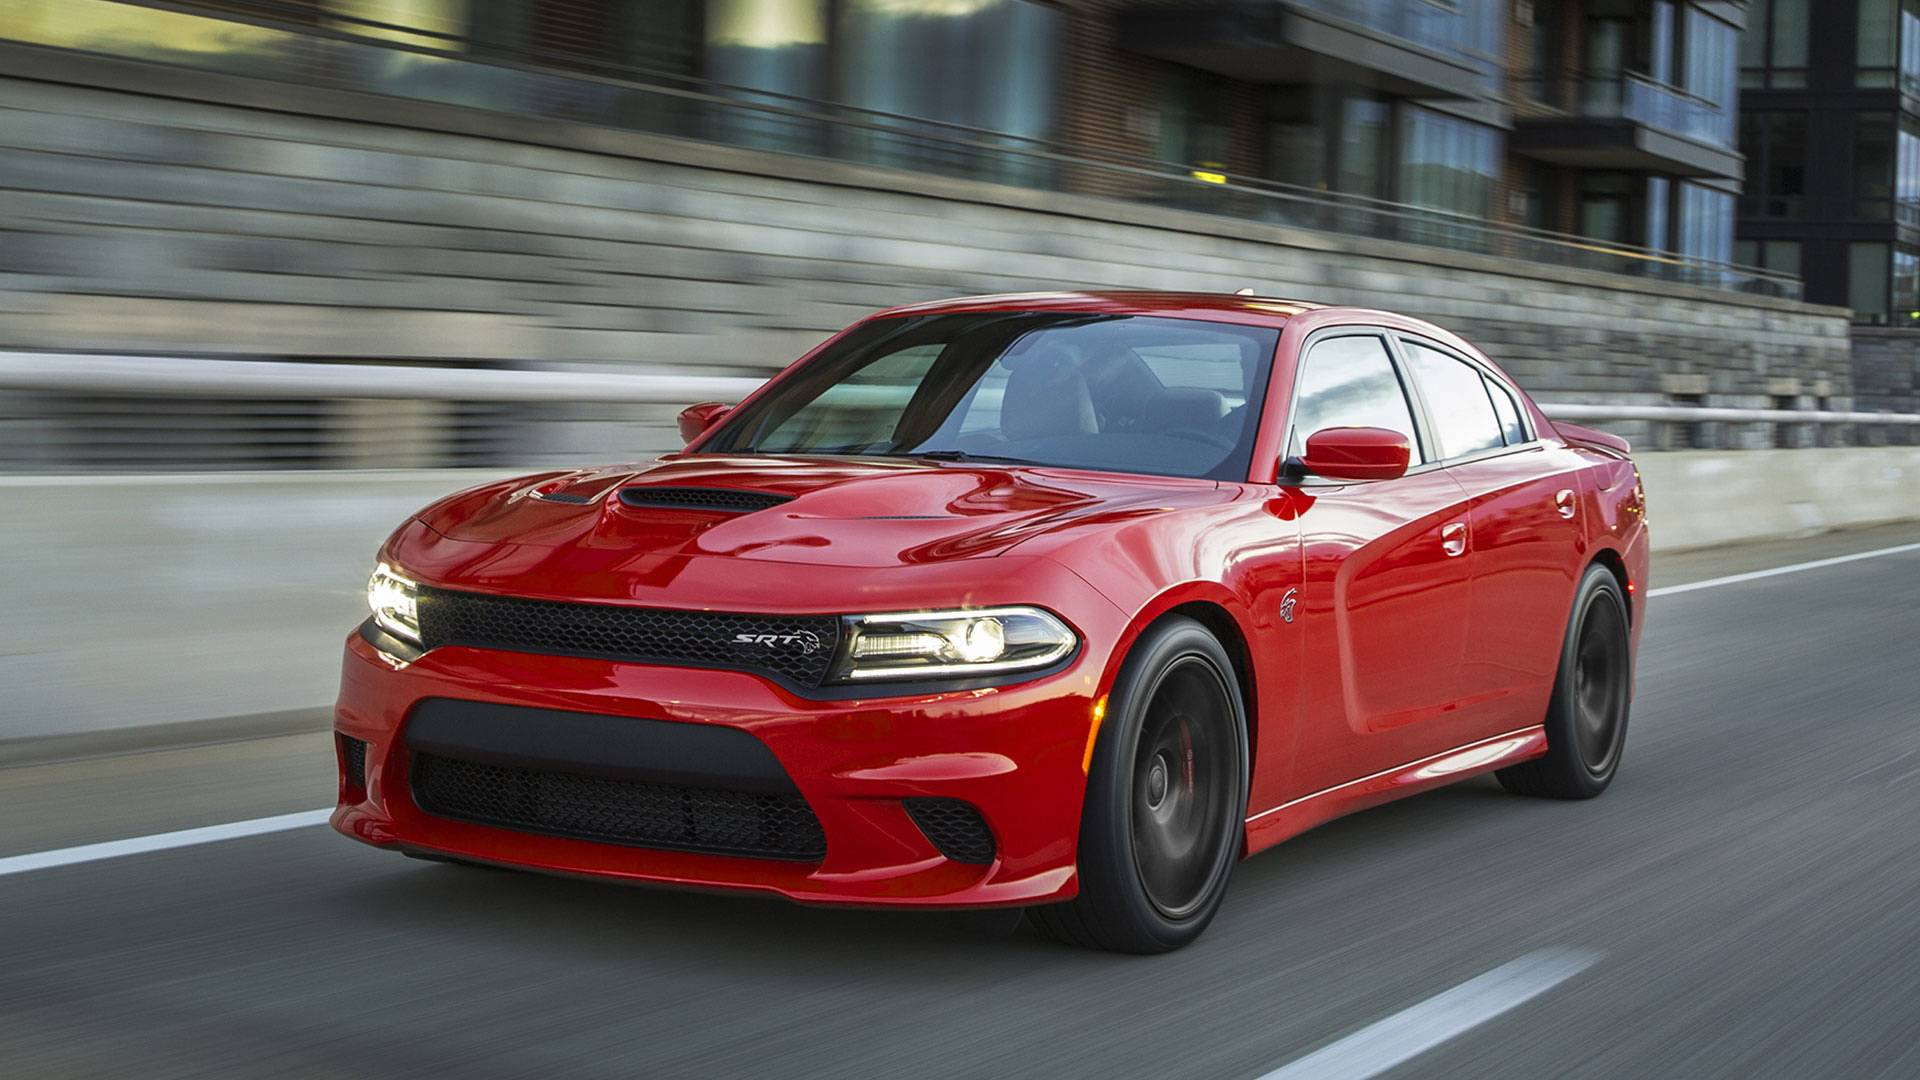 The Most-Searched Cars of 2017